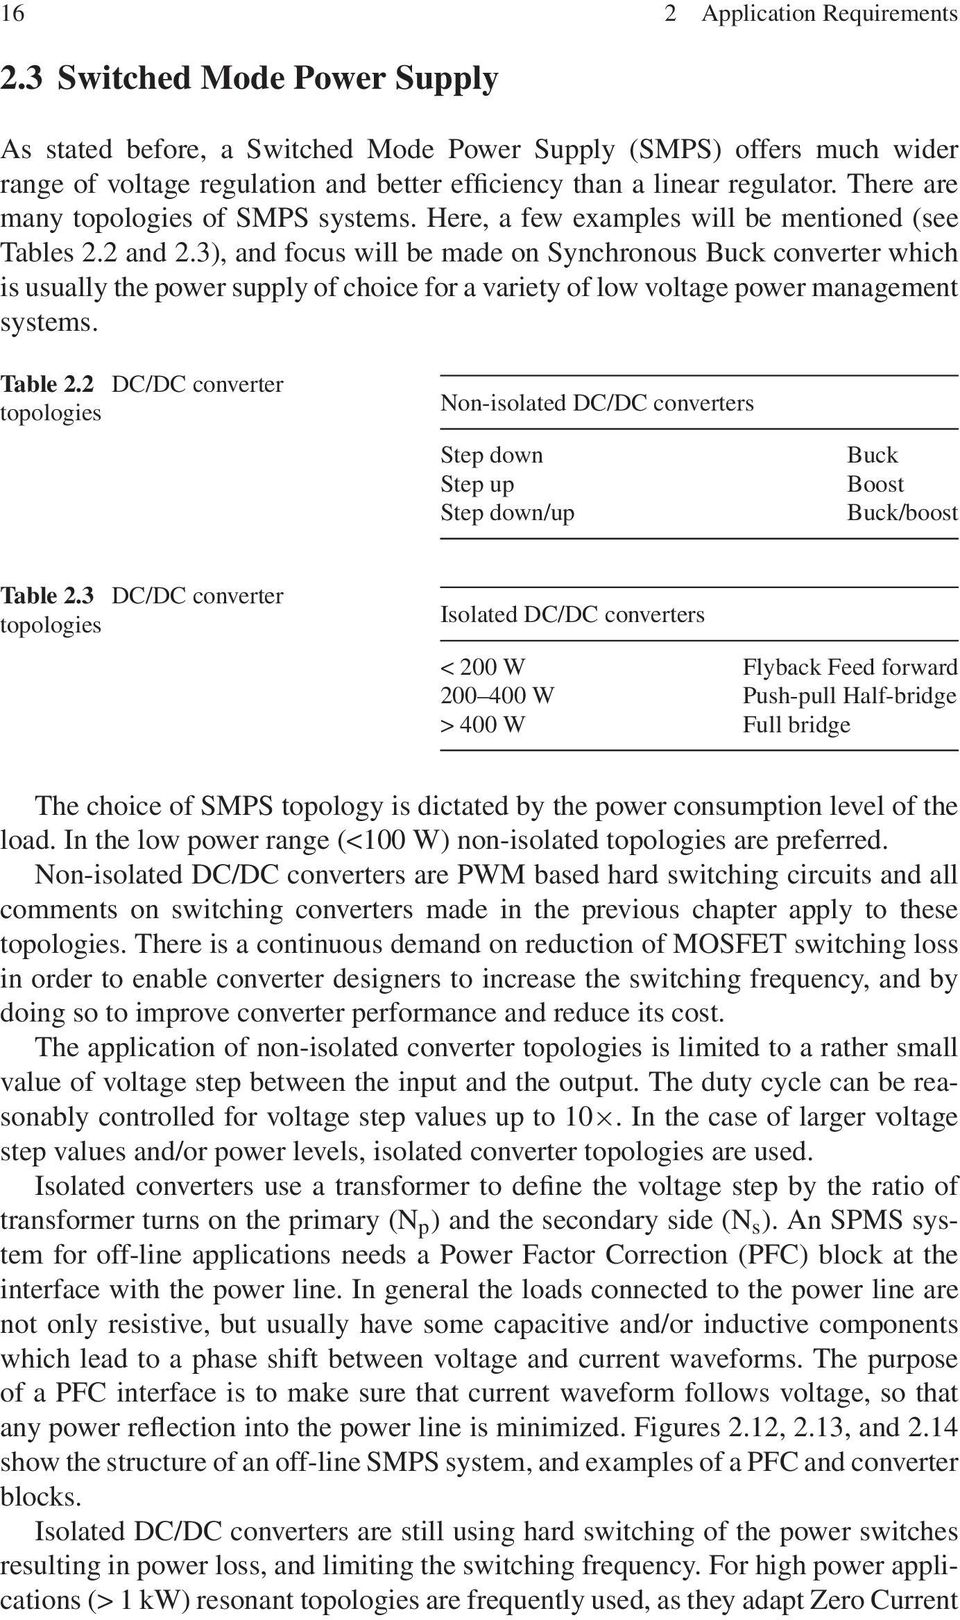 Chapter 2 Application Requirements Pdf Regulated Linear Dc Power Supply There Are Many Topologies Of Smps Systems Here A Few Examples Will Be Mentioned